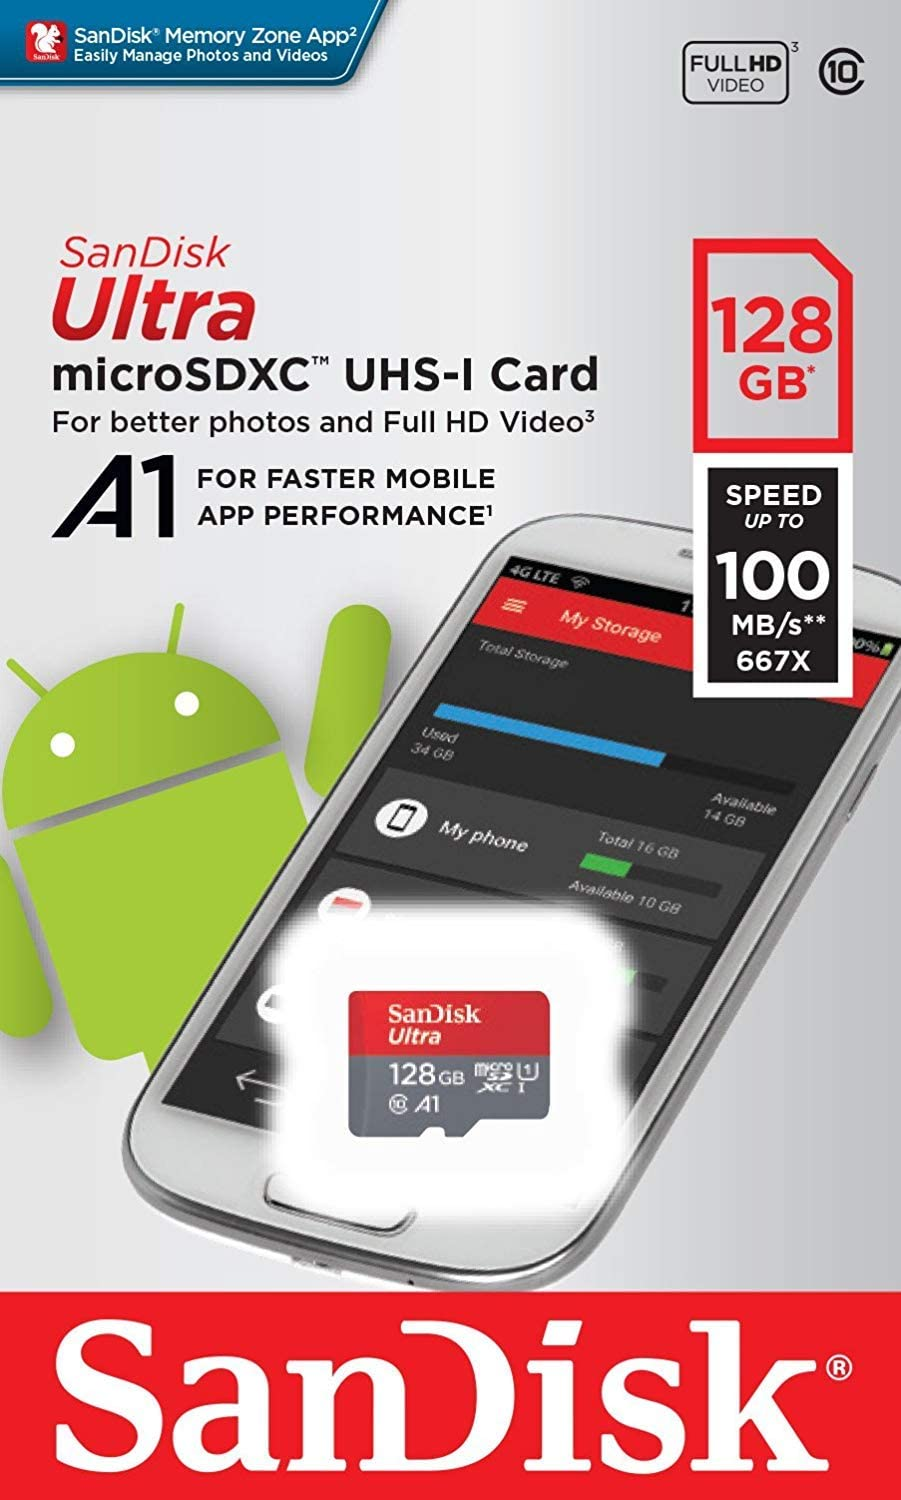 100MBs A1 U1 Works with SanDisk SanDisk Ultra 128GB MicroSDXC Verified for LG E410 by SanFlash